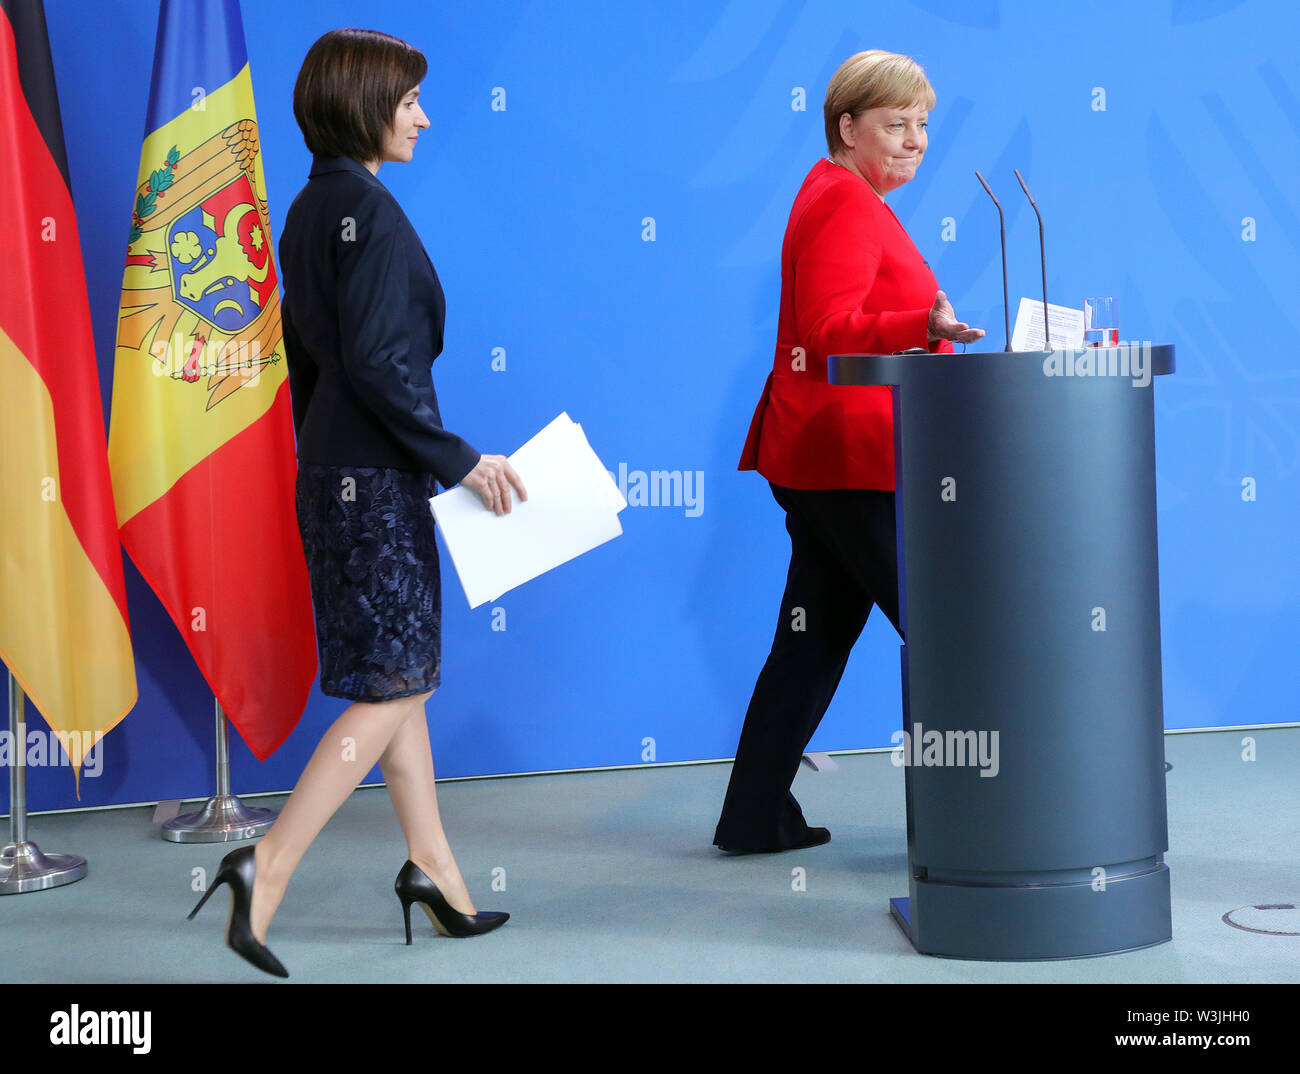 Berlin, Germany. 16th July, 2019. Federal Chancellor Angela Merkel (CDU, r) and Maia Sandu, Moldovan Prime Minister, will attend a press conference at the Federal Chancellery. Credit: Wolfgang Kumm/dpa/Alamy Live News - Stock Image